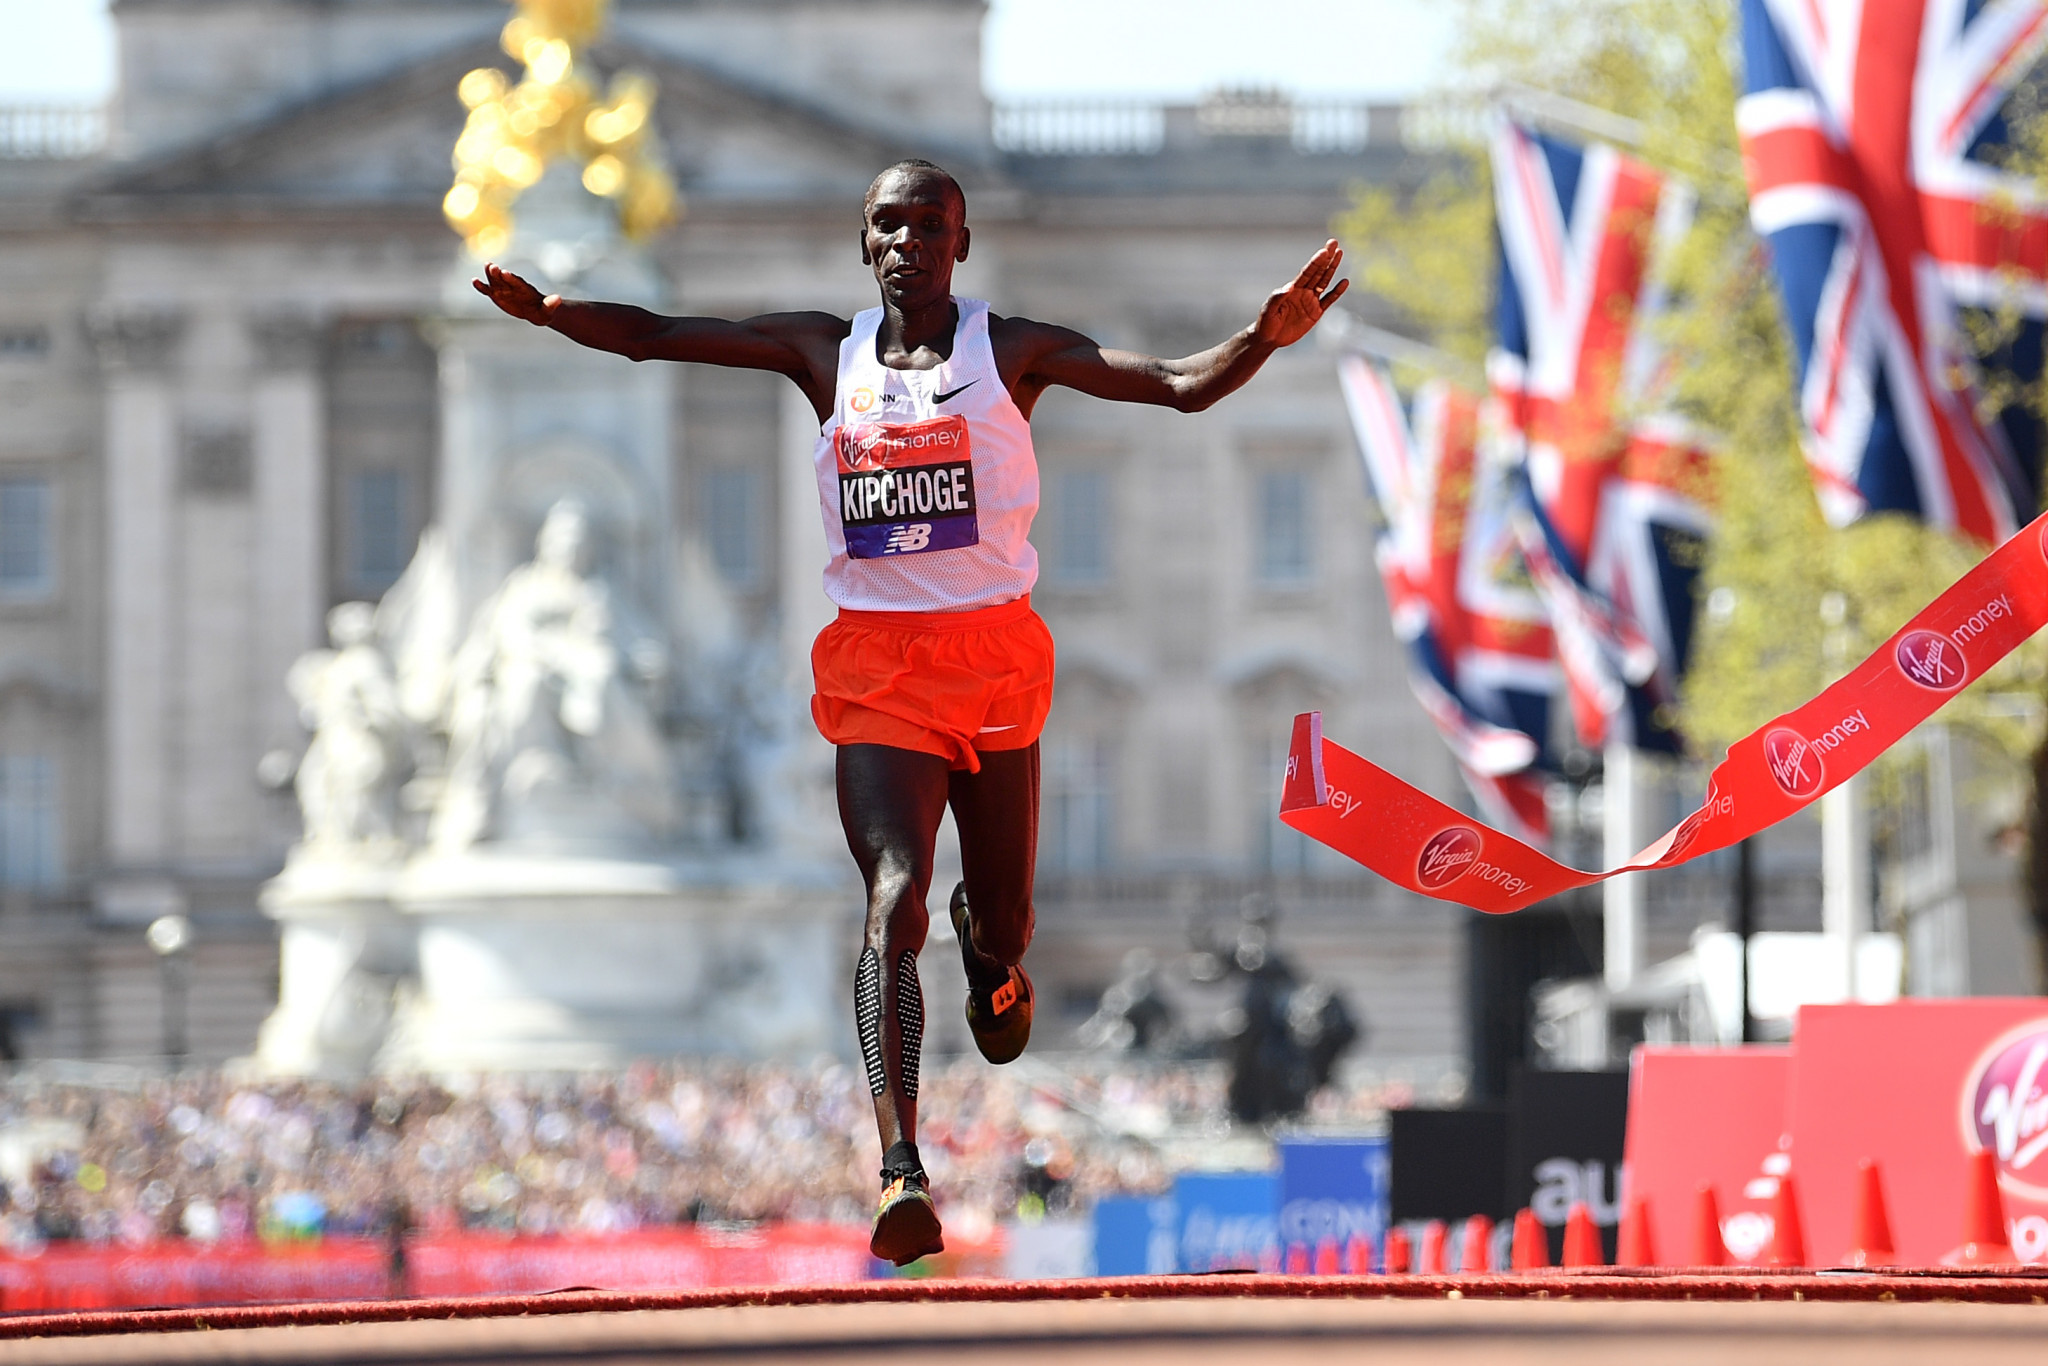 Kenya's Eliud Kipchoge dominated the men's race and claimed a third Virgin London Marathon win ©Getty Images